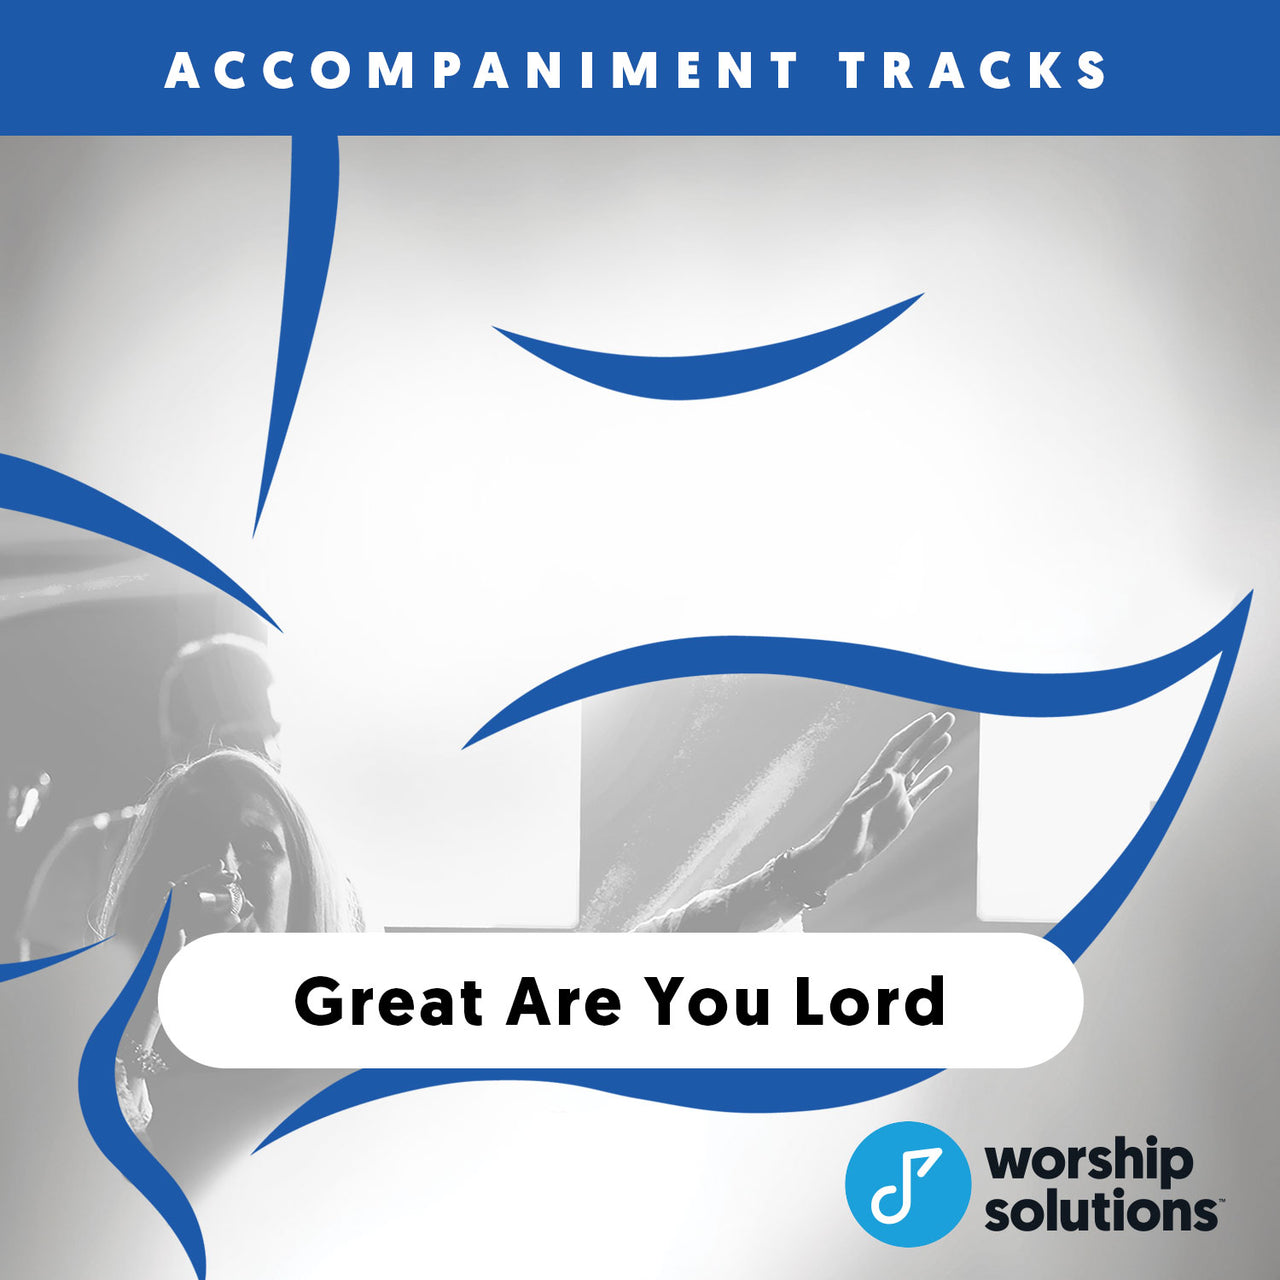 Great Are You Lord, Accompaniment Track